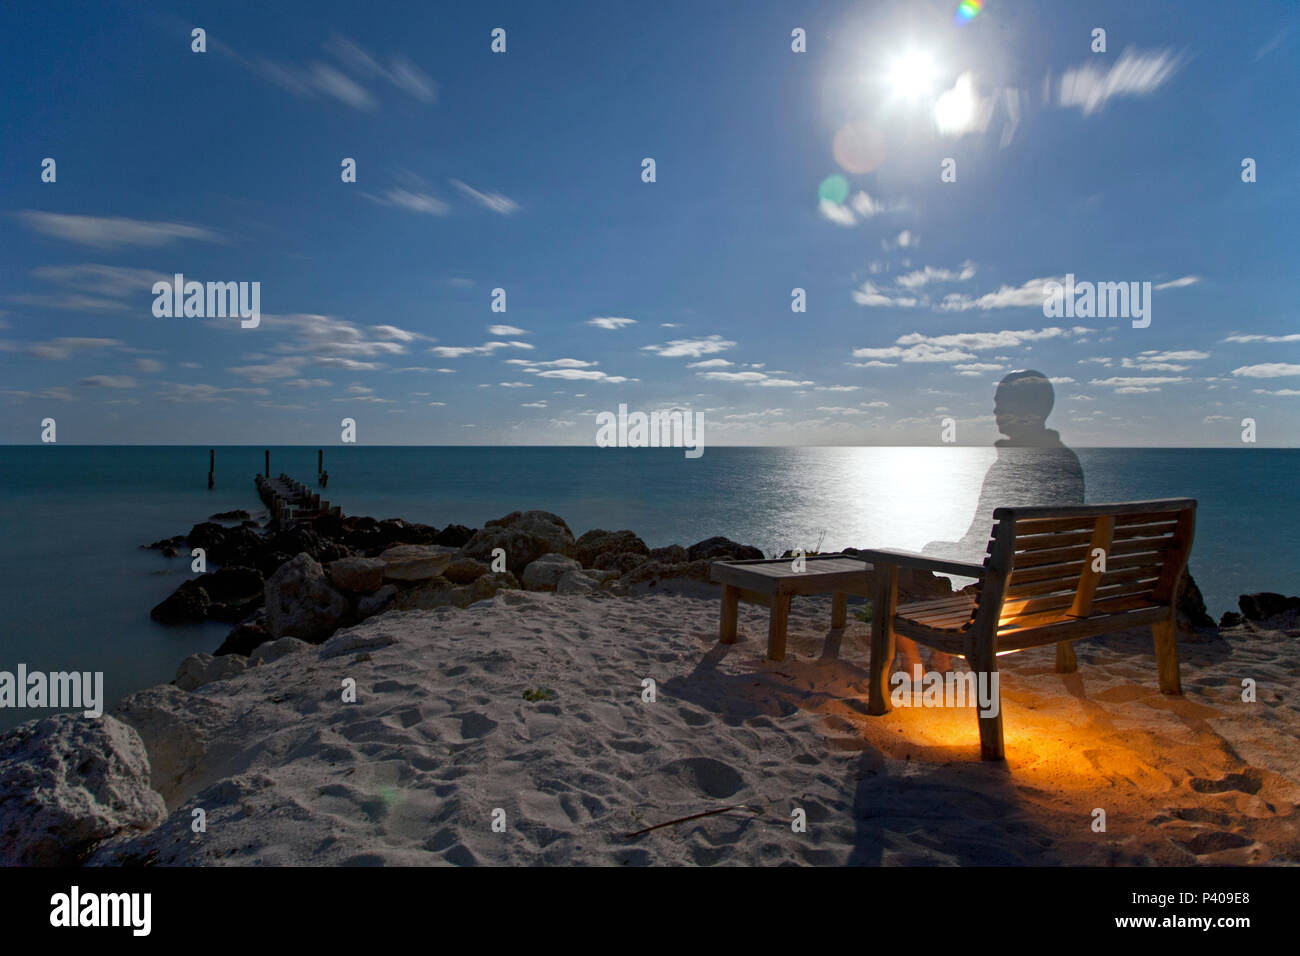 Ghost-Like Man Sitting on Beach at Dusk - Stock Image